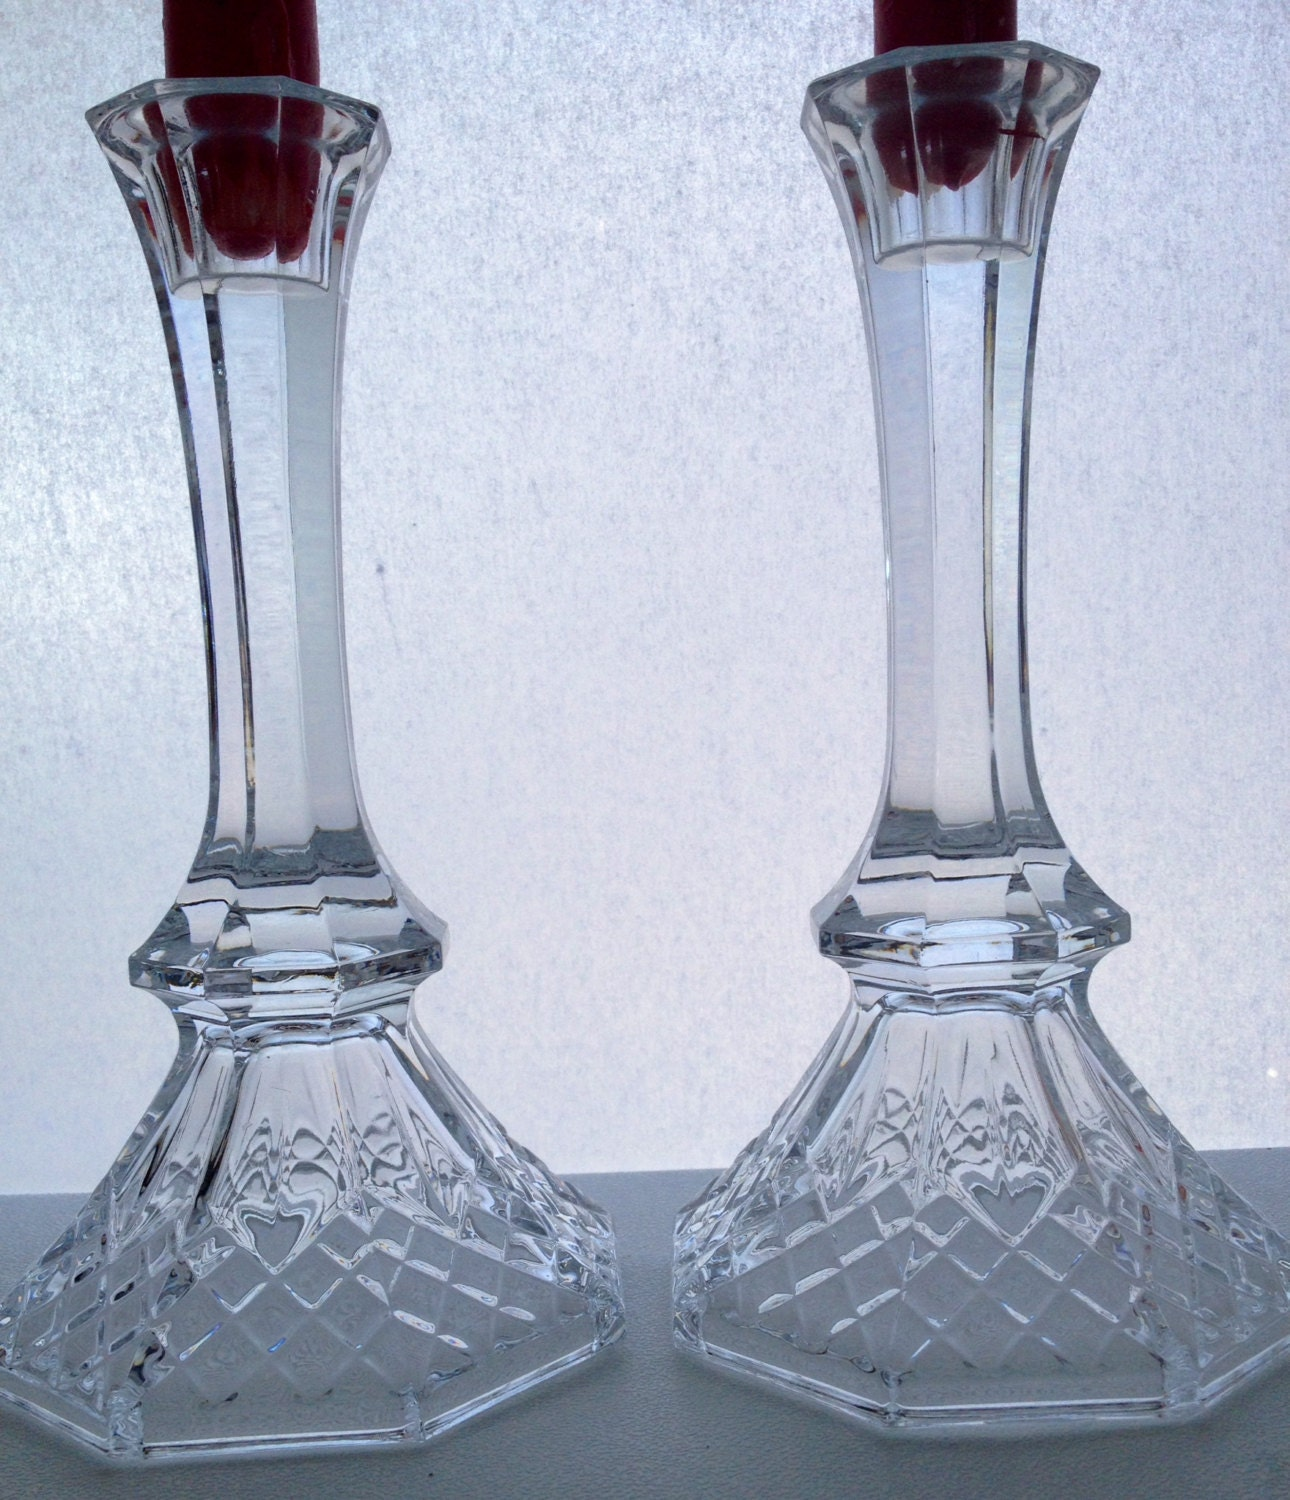 Glass Candle Holders Vintage Candle Holders By